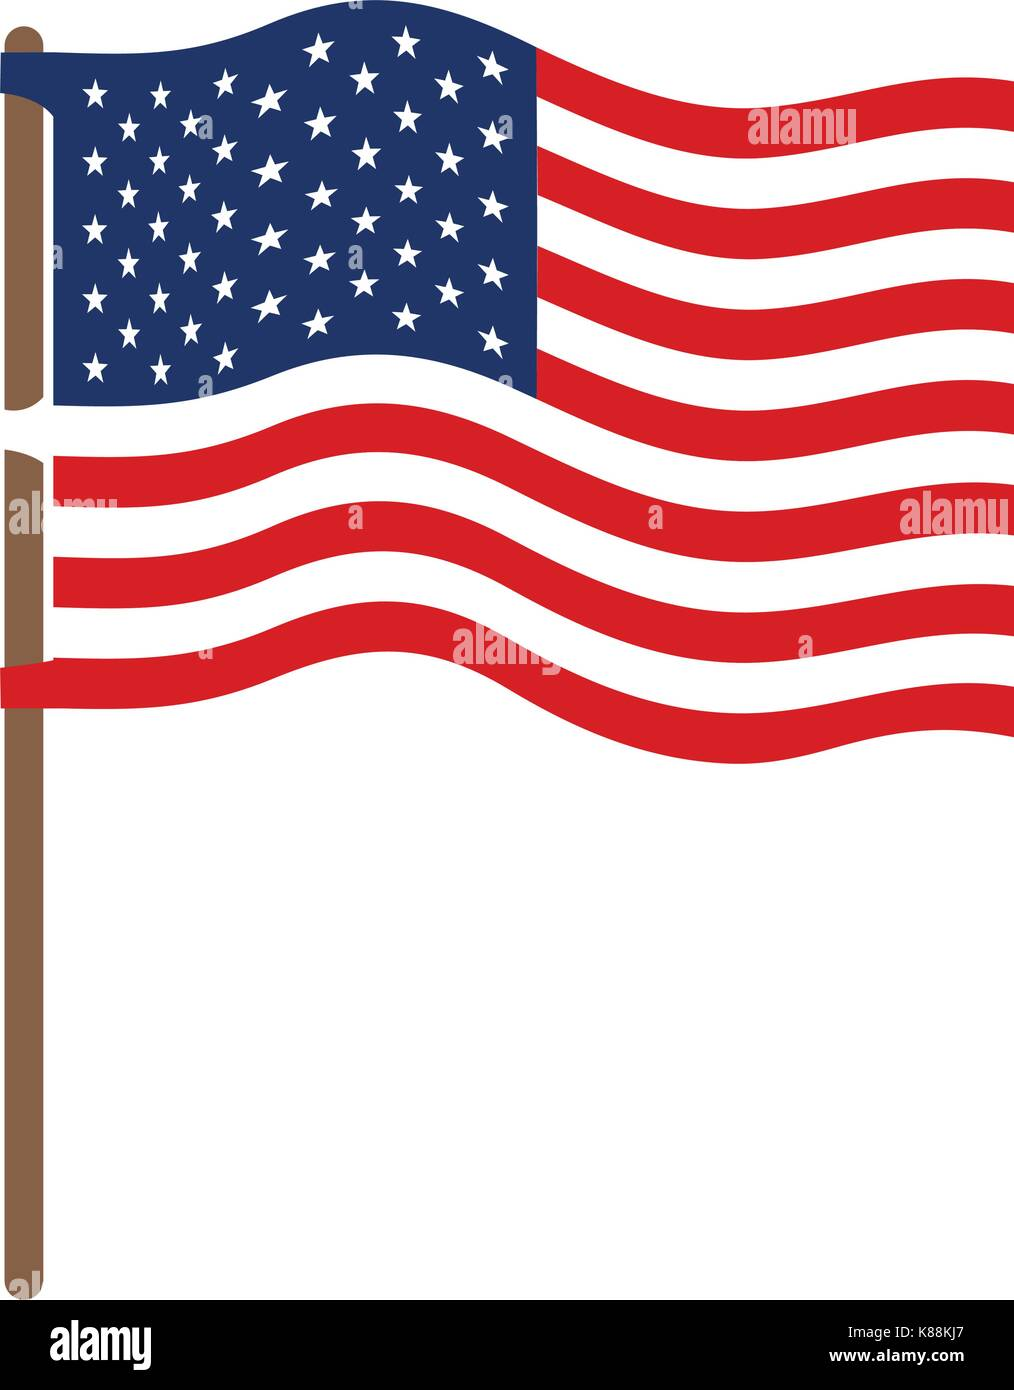 flag united states of america in flagpole wave and colorful silhouette without contour - Stock Image